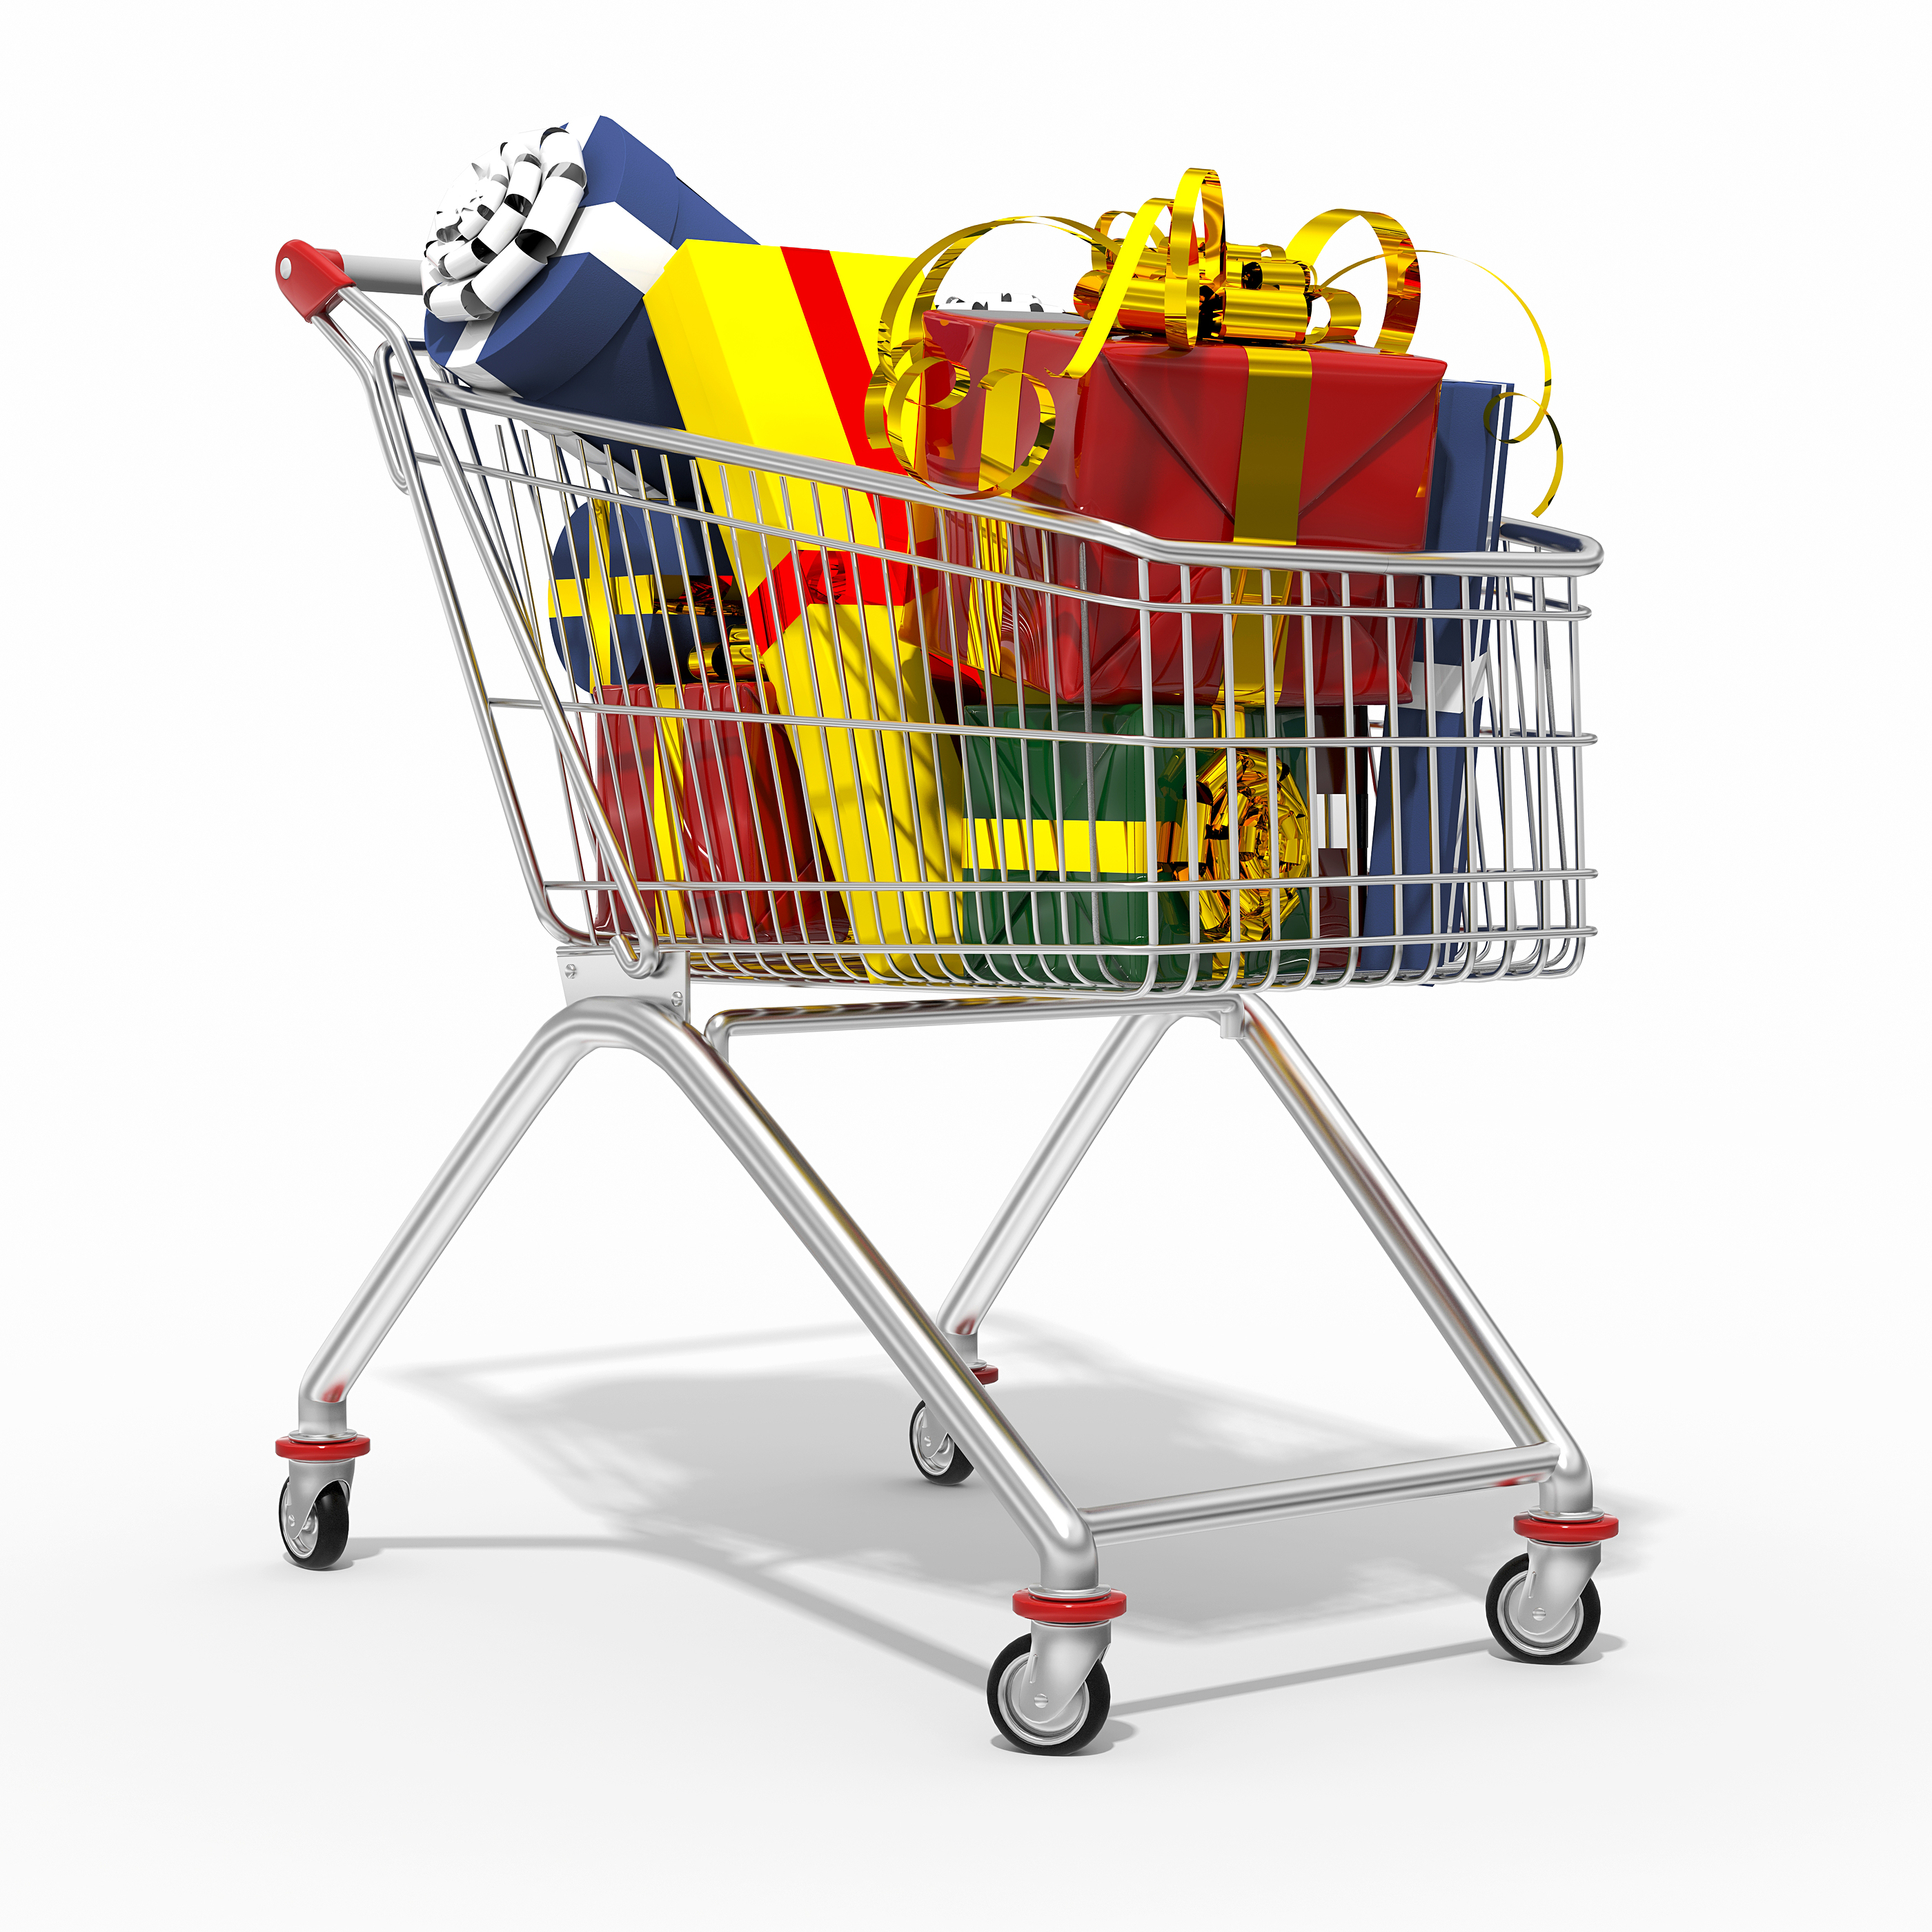 1424-Photorealistic-D-shopping-cart